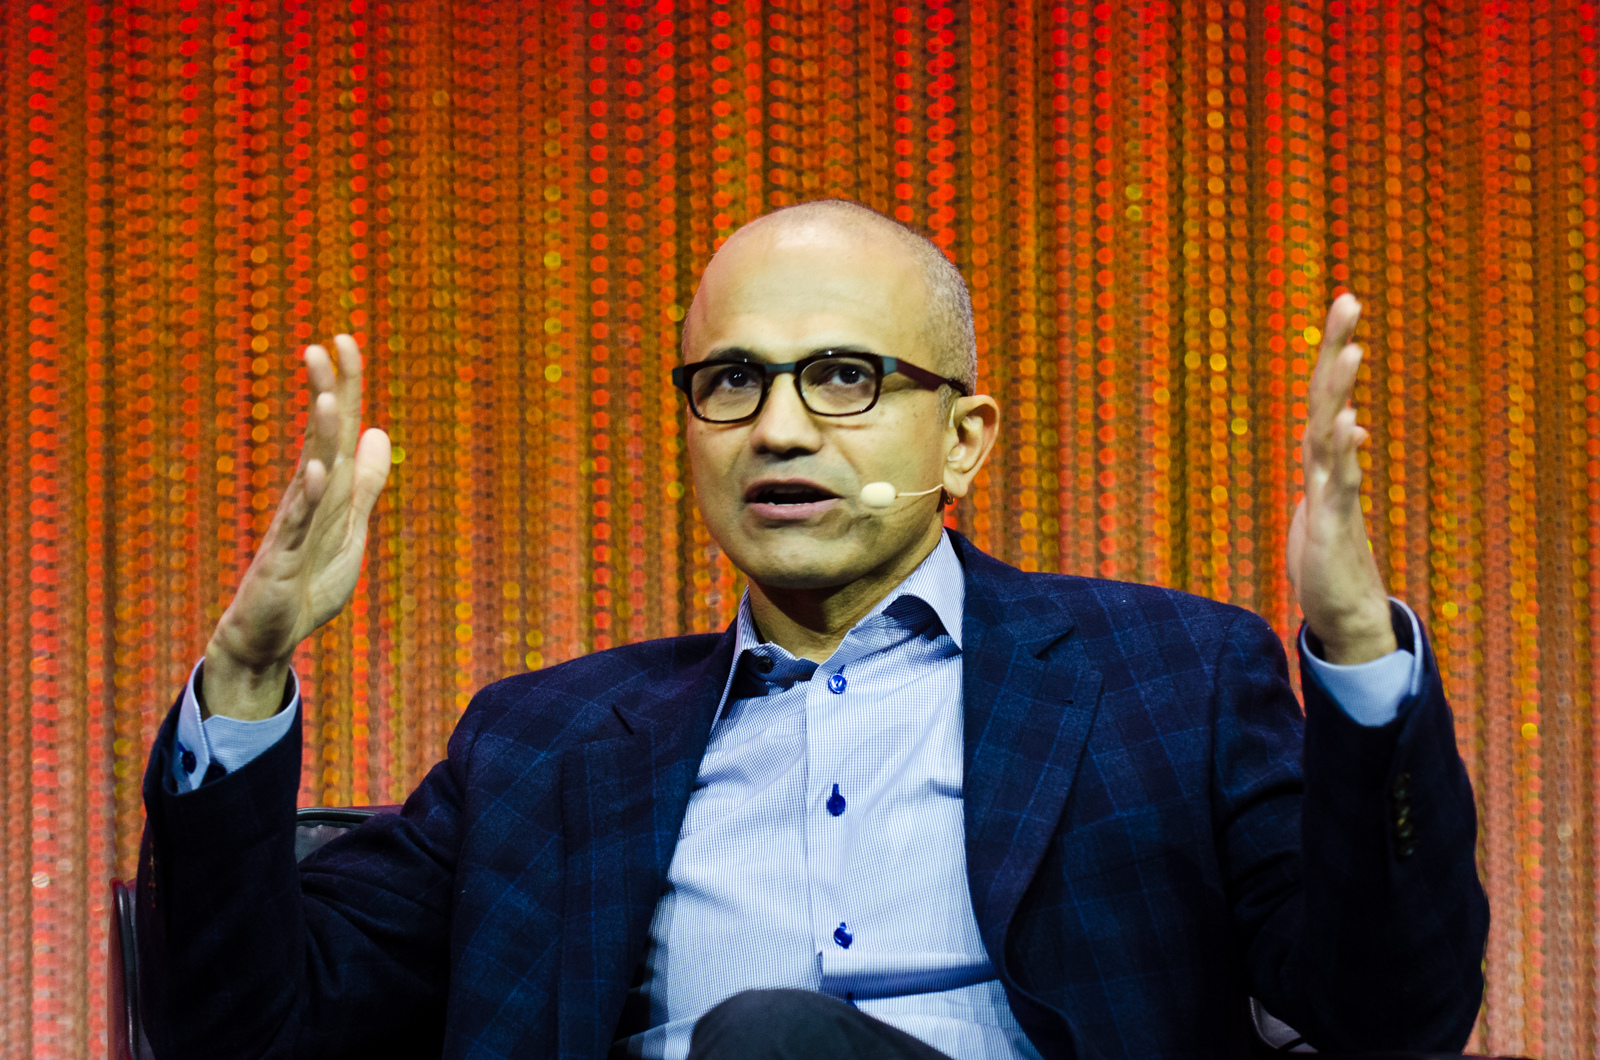 What Does Microsoft's New CEO Mean For The Technology Industry?